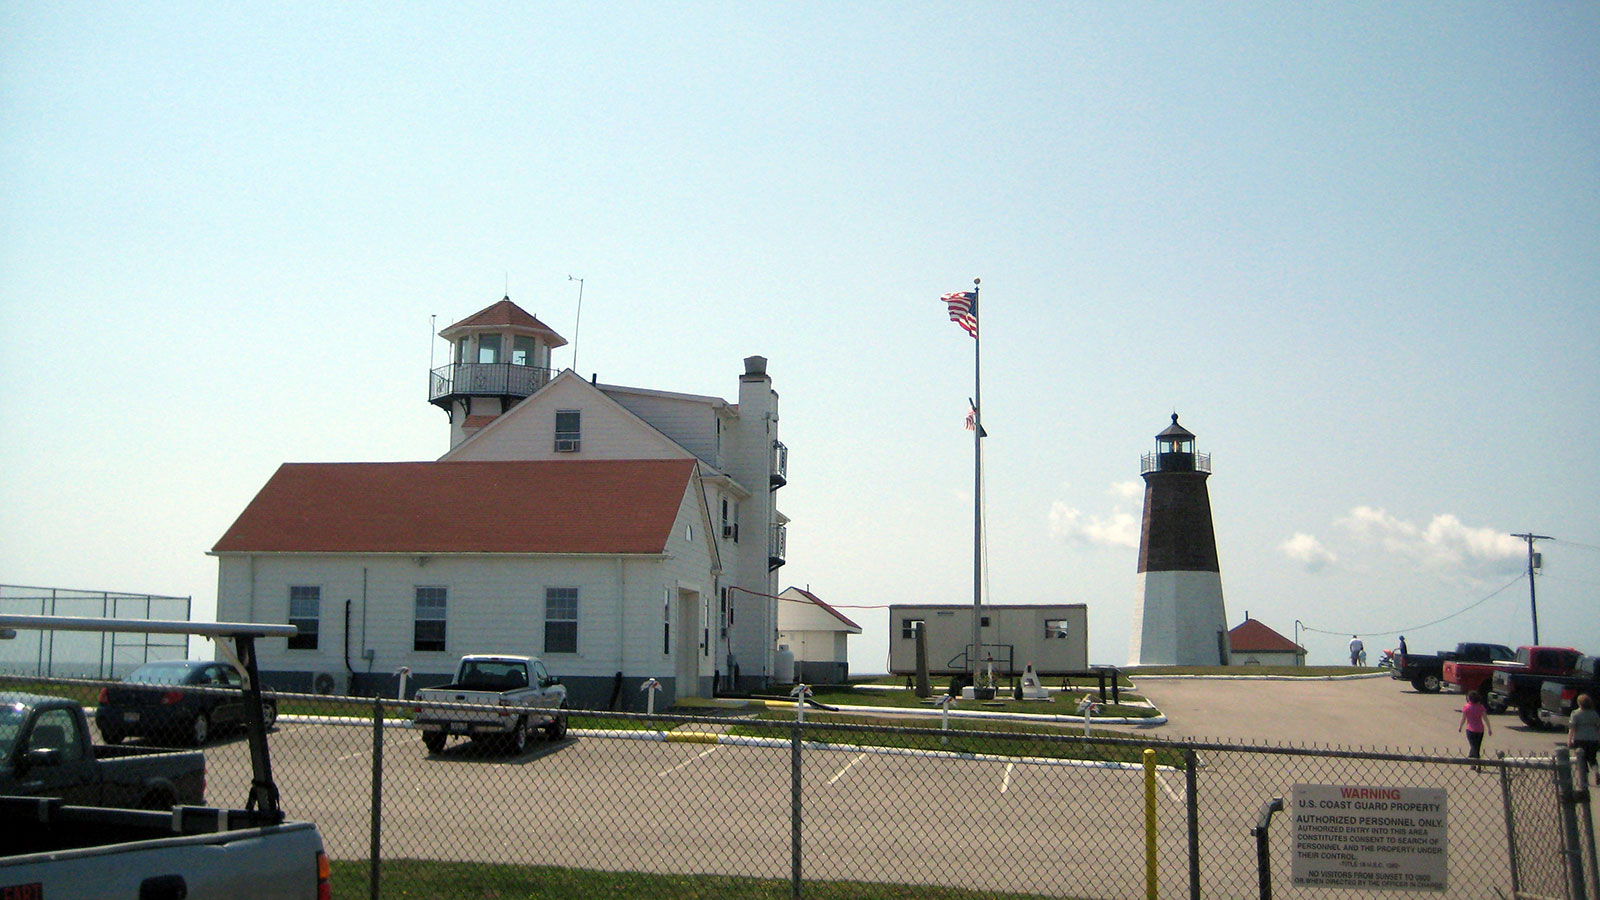 USCG Station Point Judith